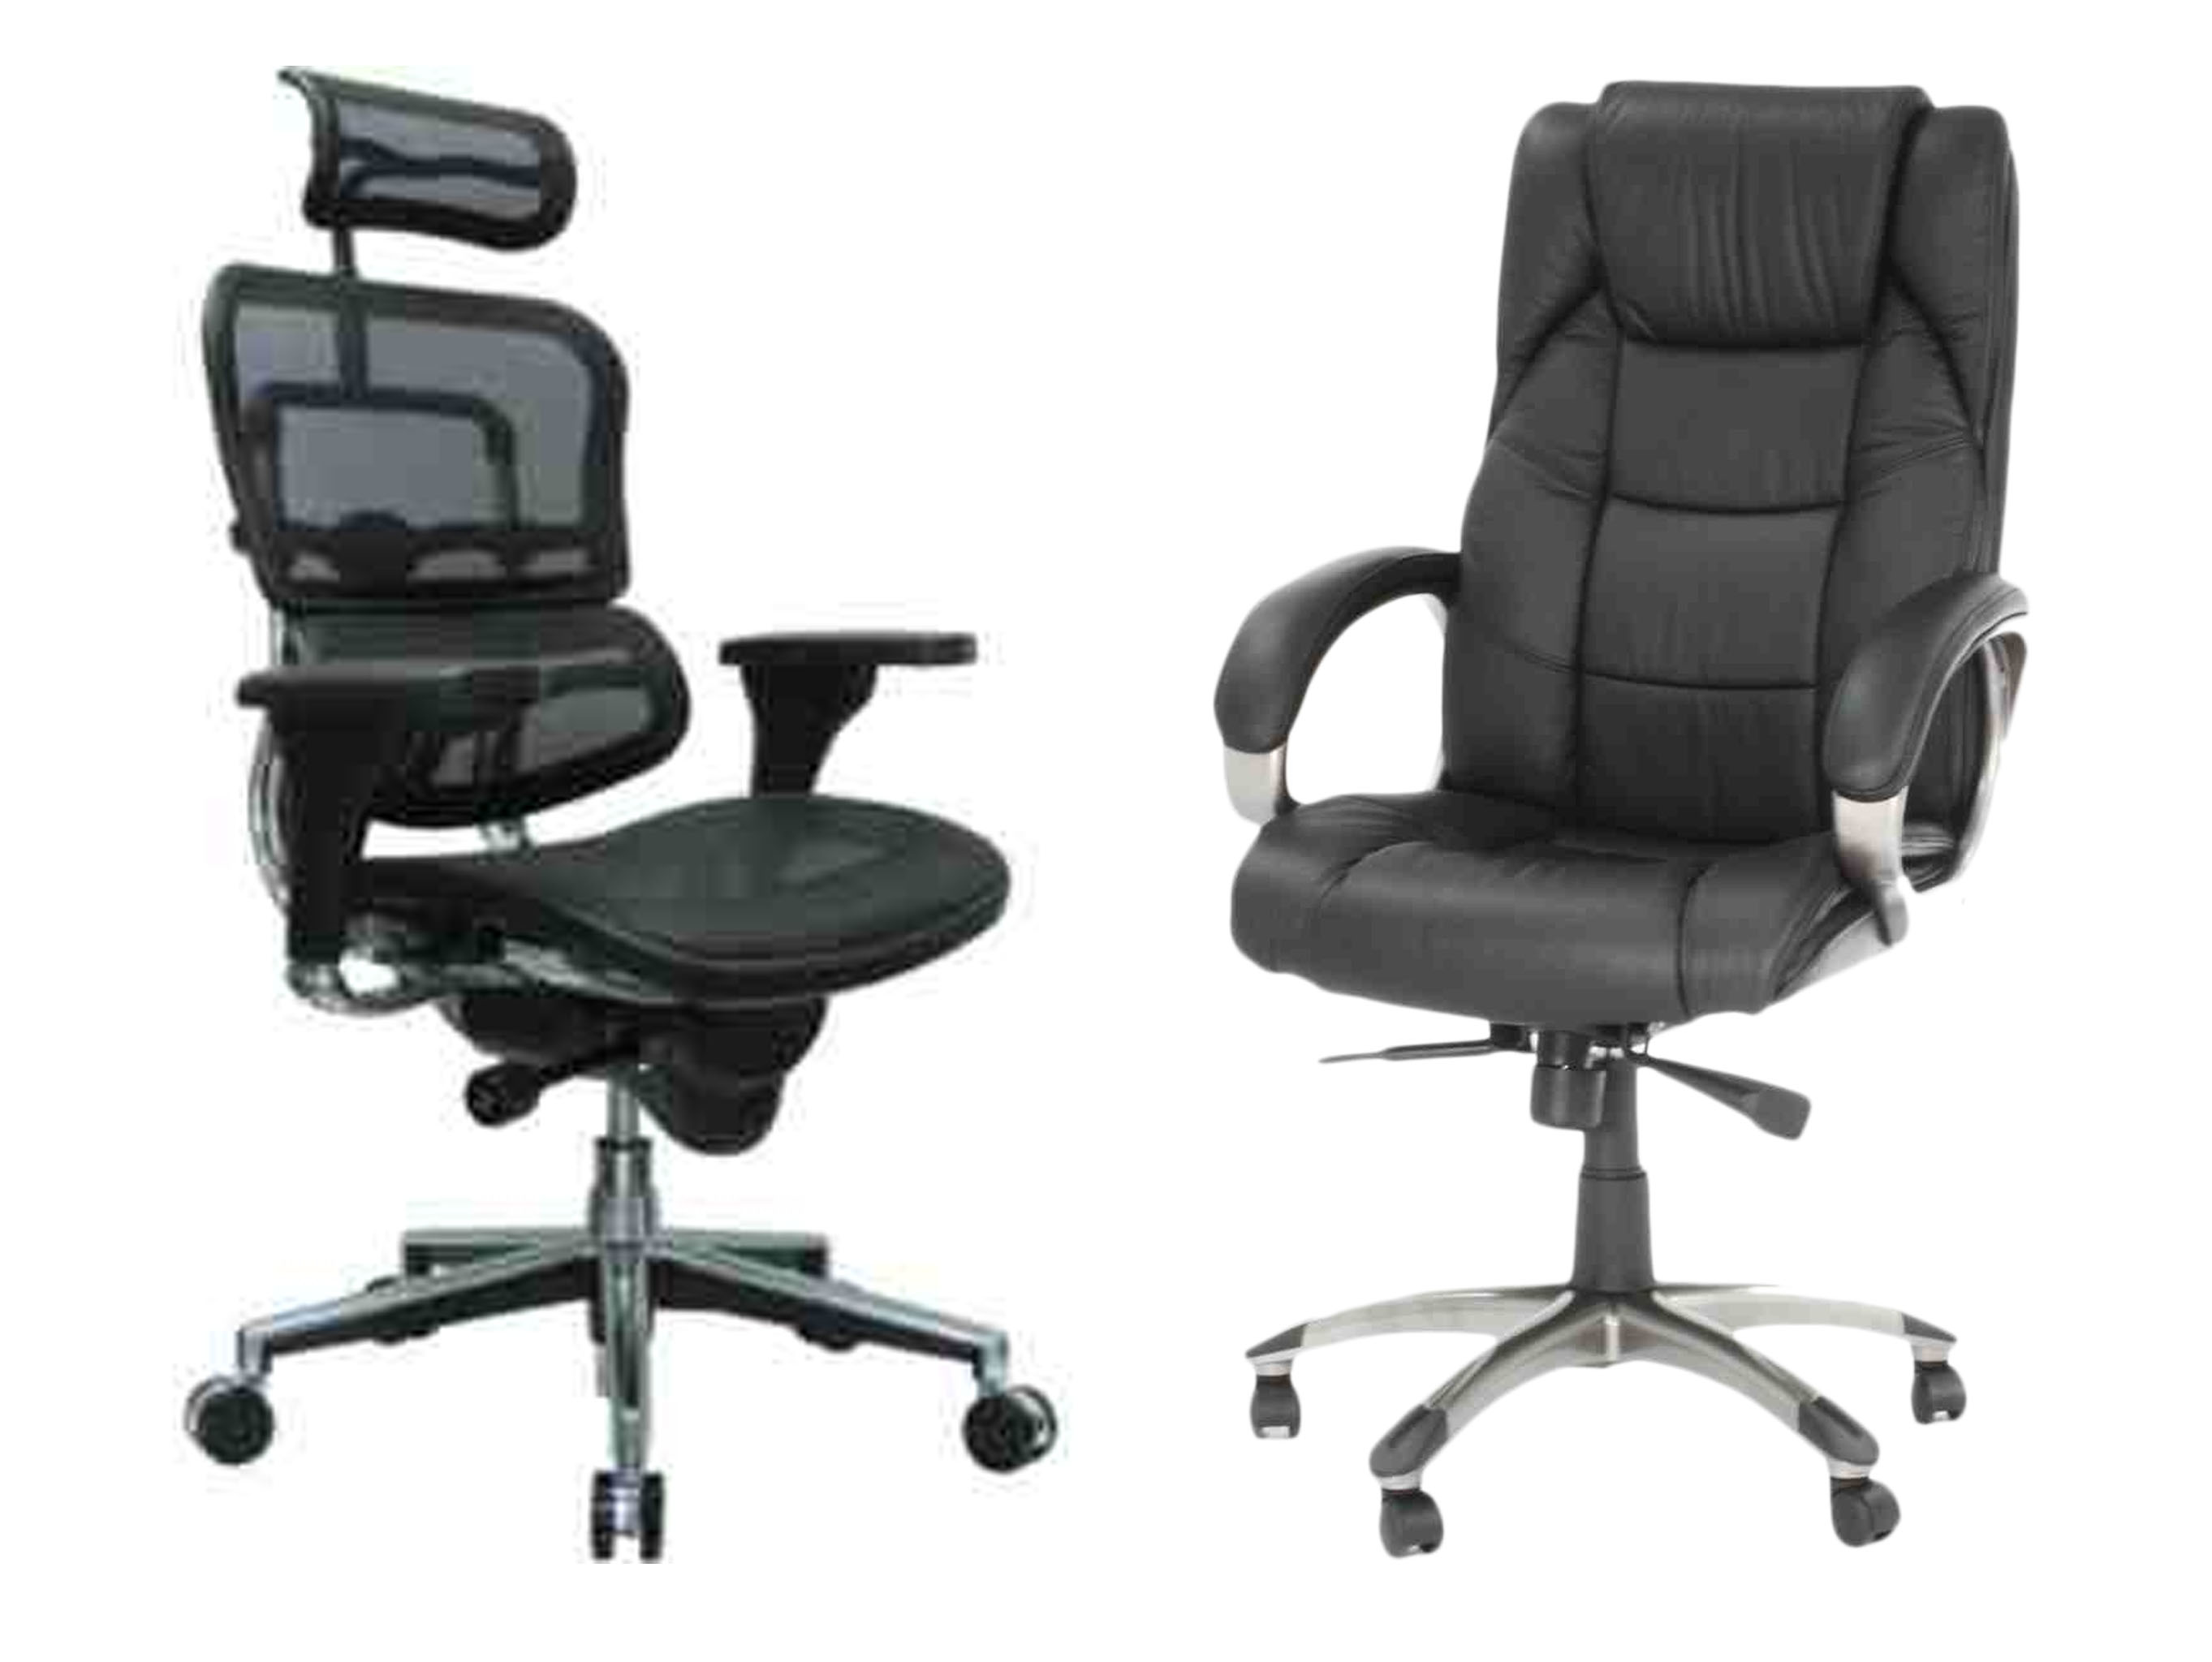 Leather Office Chairs Mesh Vs Leather Chair Which One Is Right For You Comfy